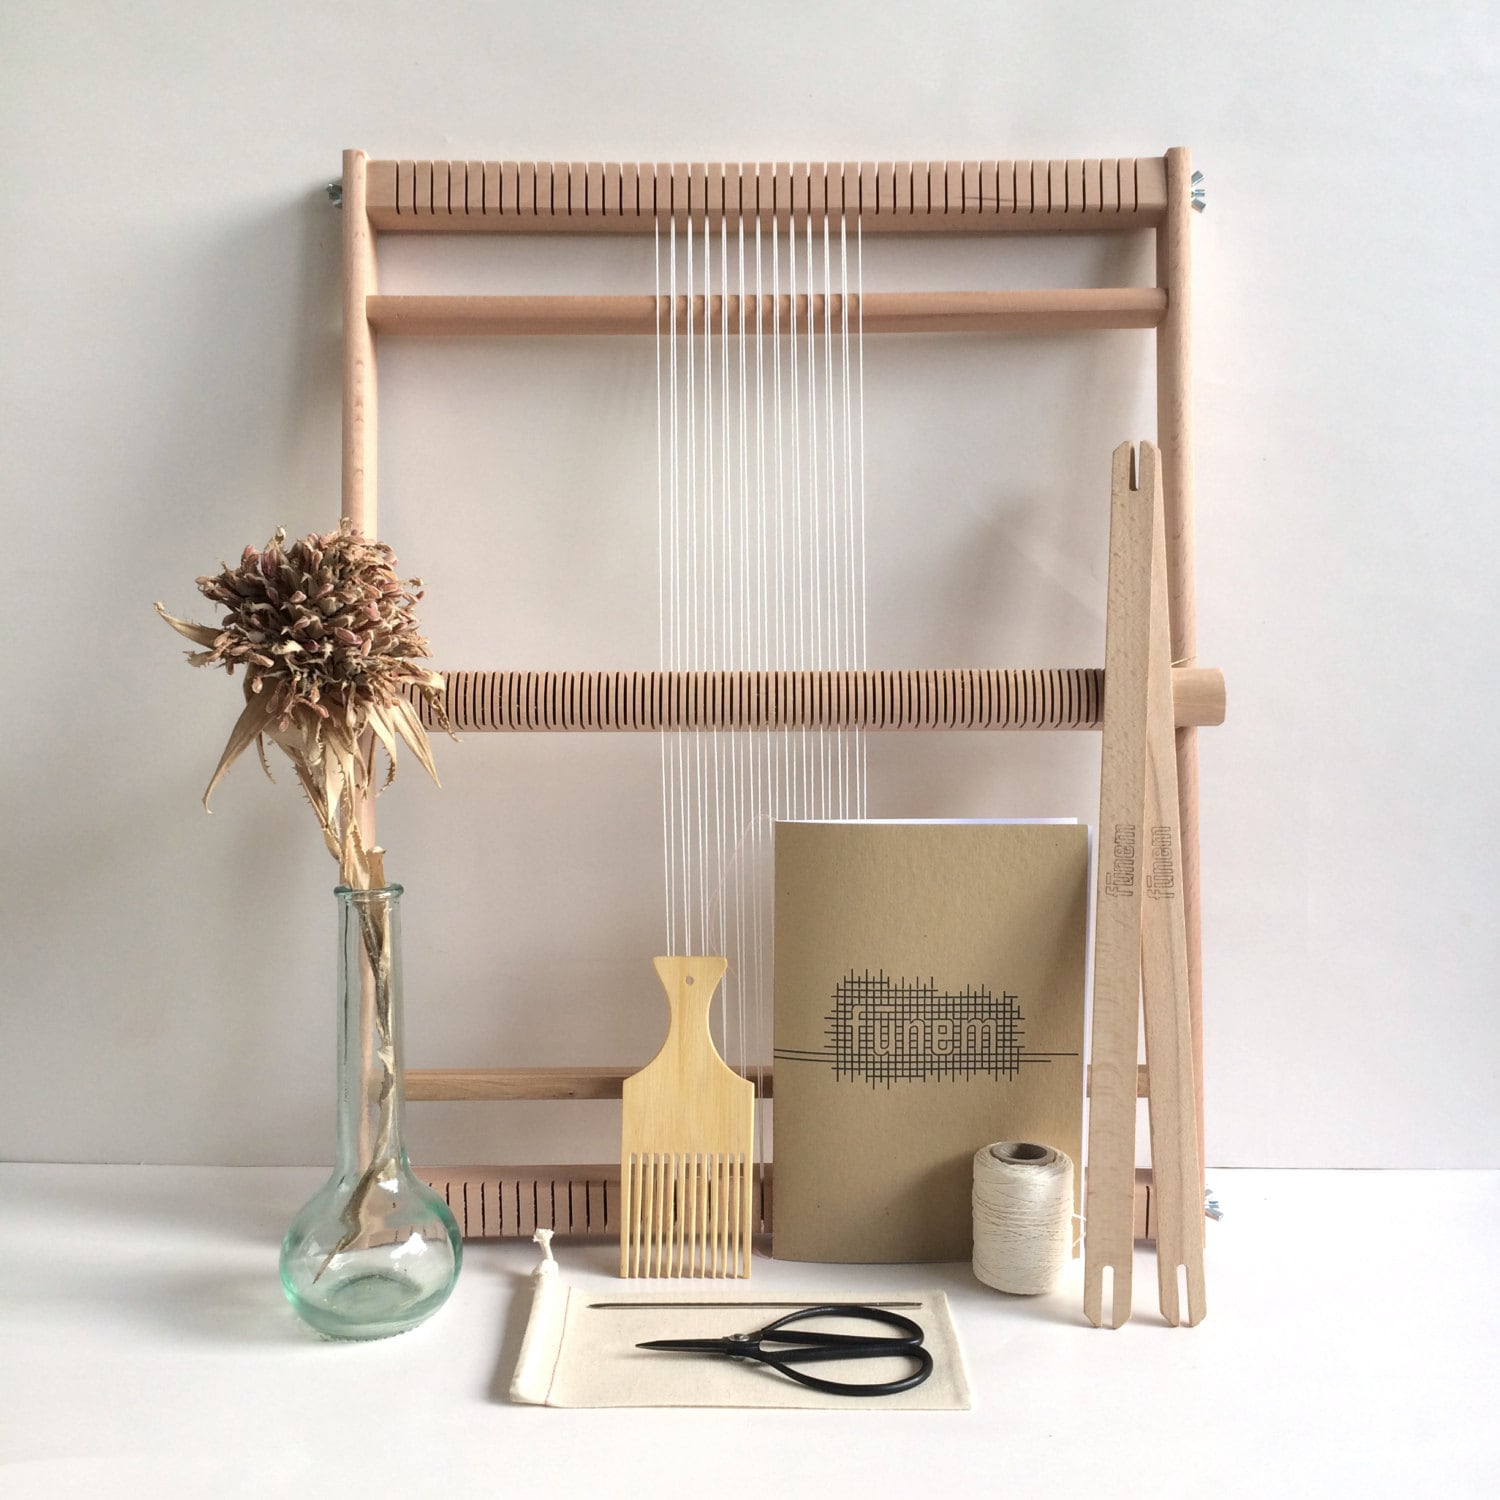 weaving loom kit xl starters kit weaving loom weefraam kit de tissage debutant